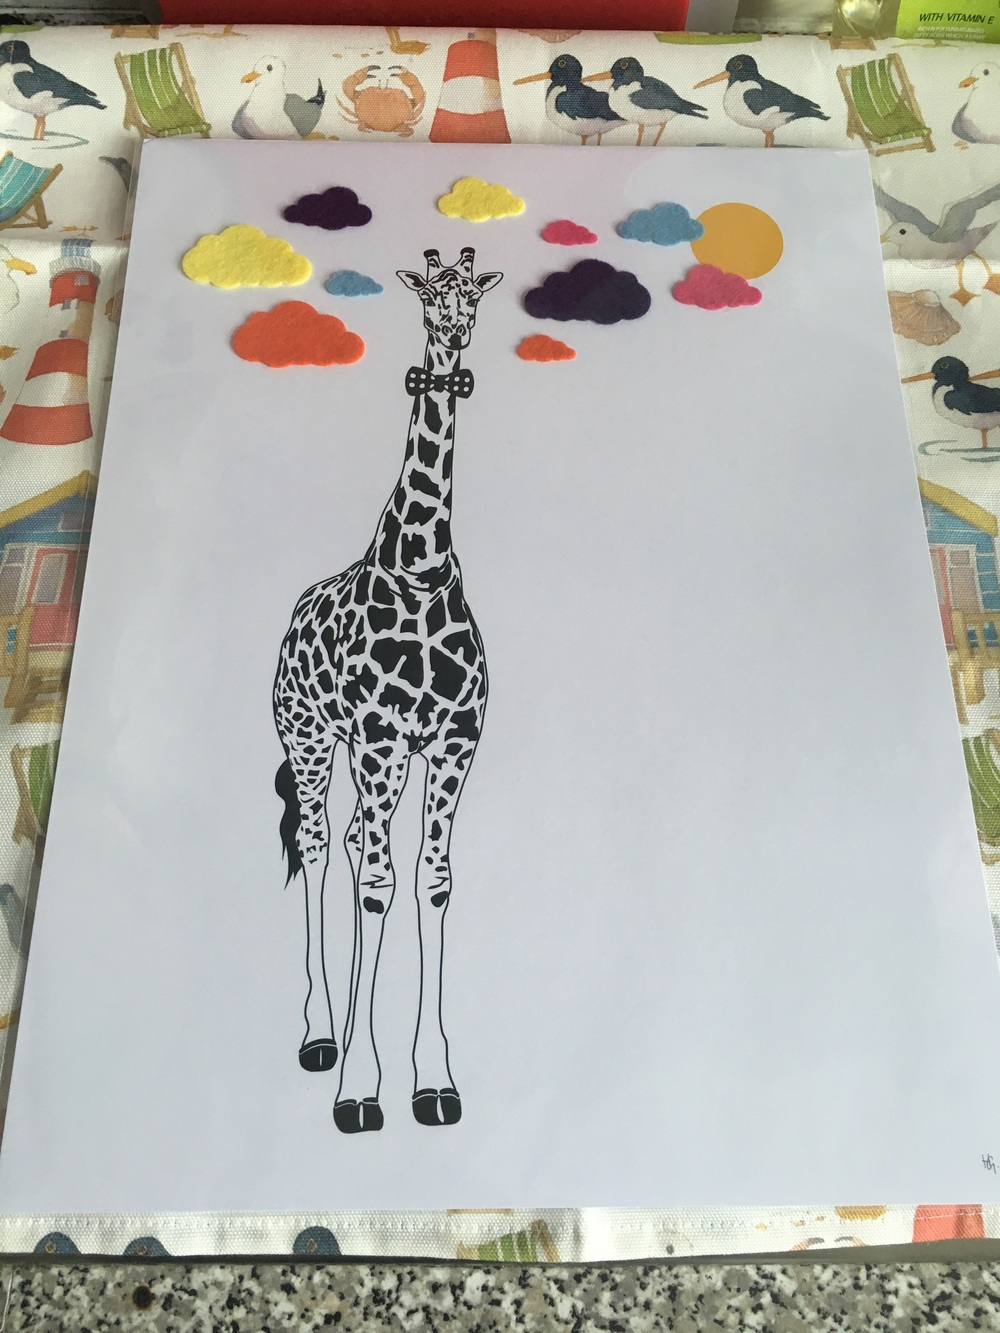 Mrs Penguin loved her giraffe print from Hello Geronimo